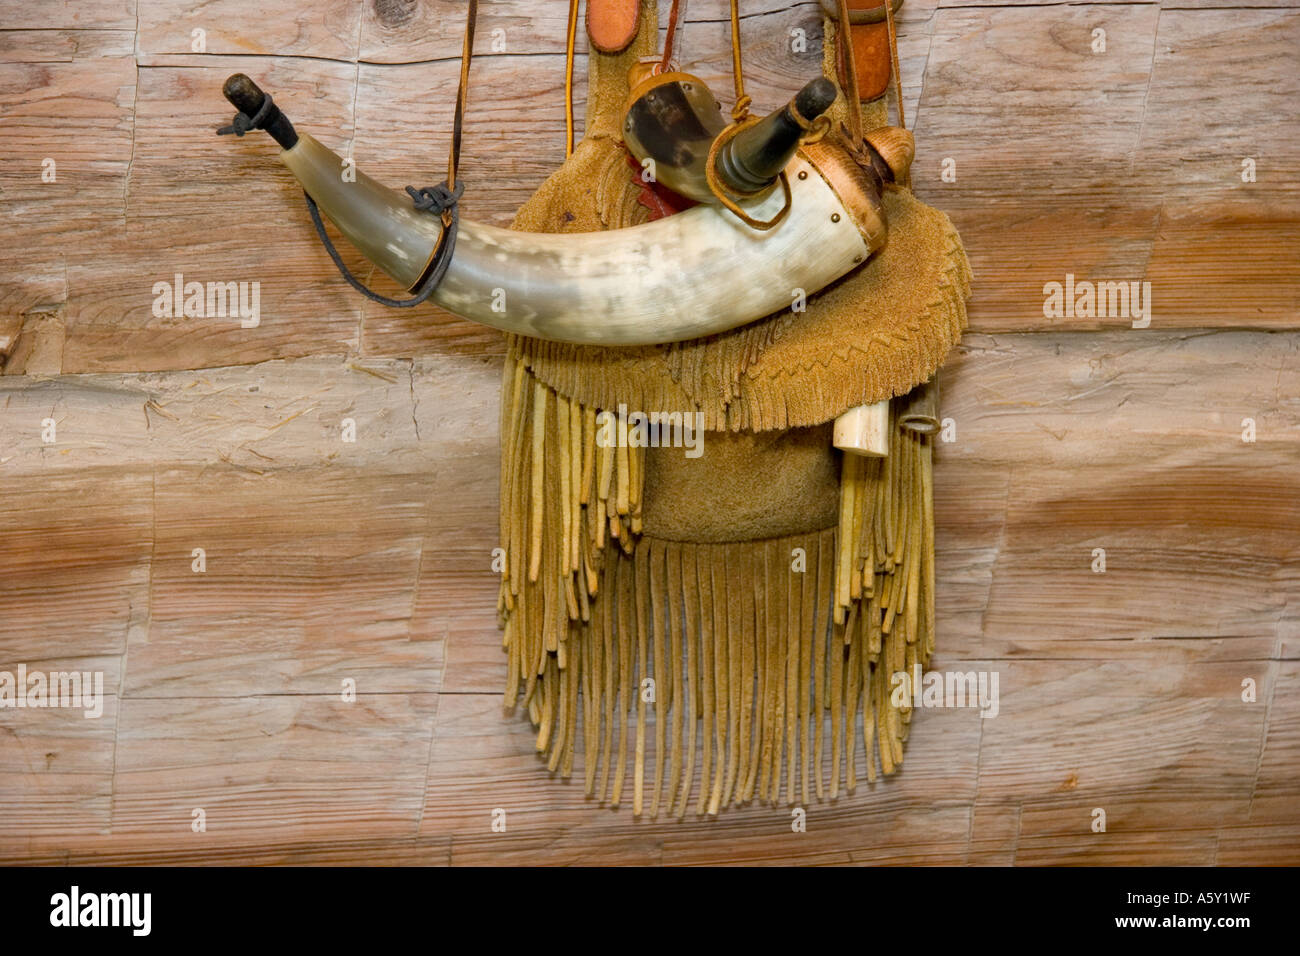 Antique Gun Supplies, Leather Pouch with Fringe, Gunpowder Horn Hanging on Cabin Wall - Stock Image